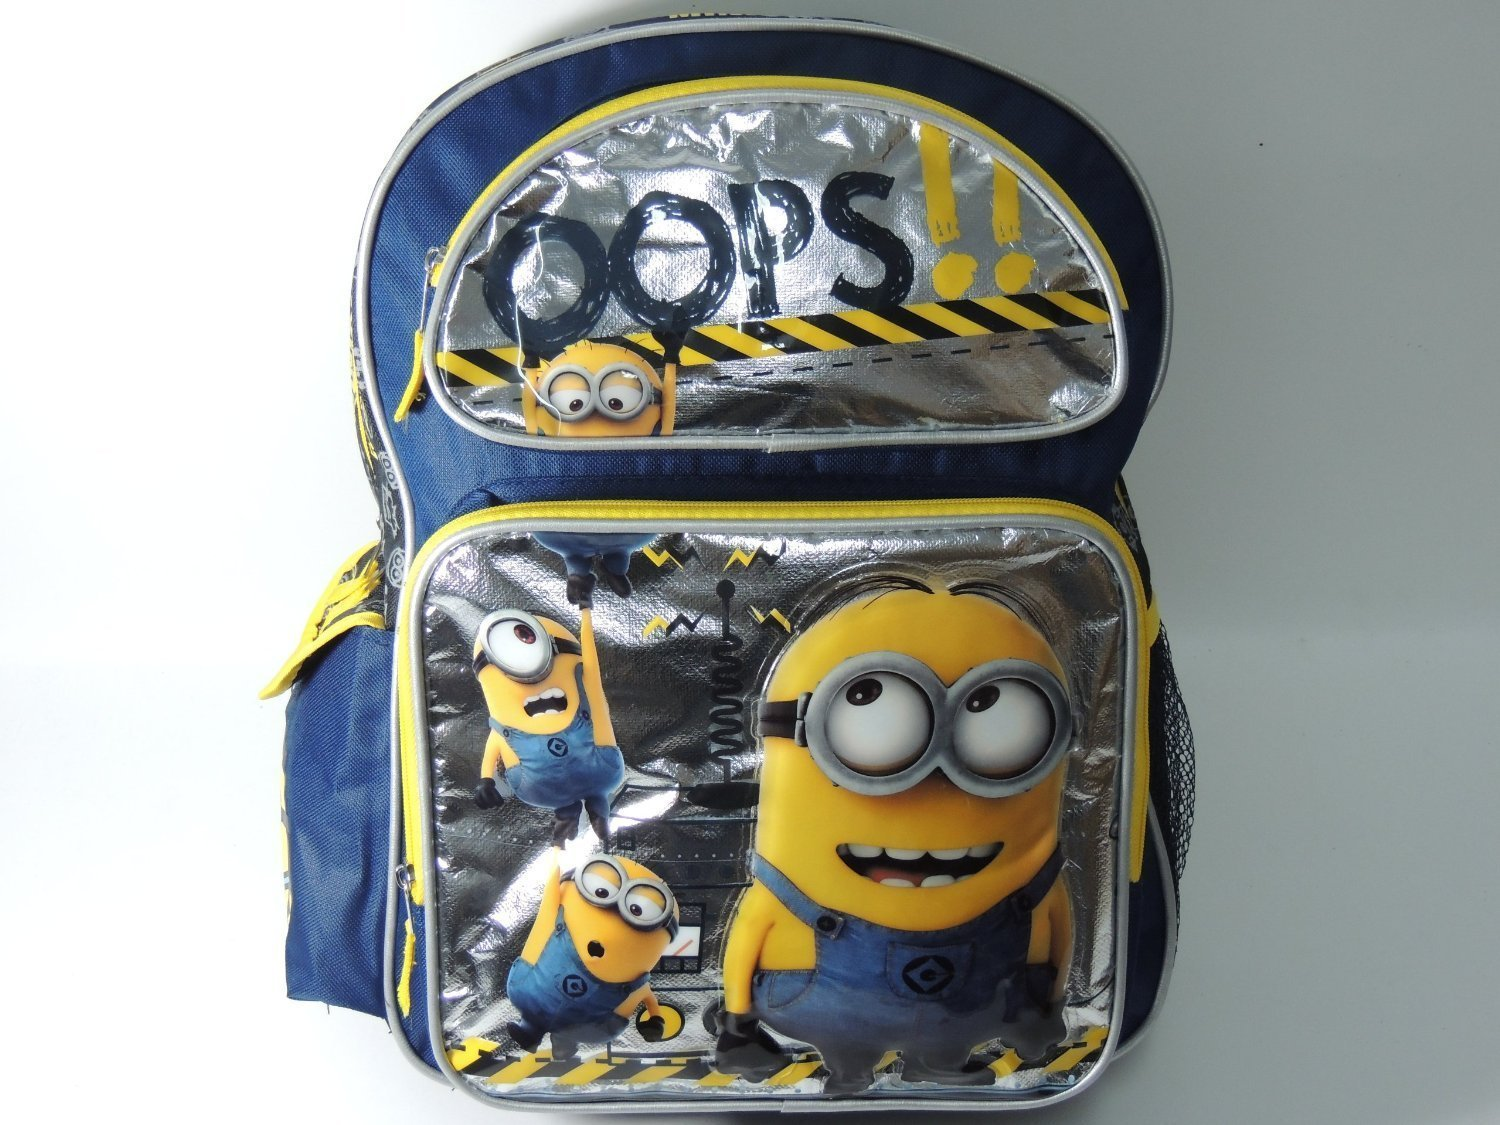 Backpack - Despicable Me 2 - 16 Minion Oops!! Large School Bag New 085500 Accessory Innovations 60175